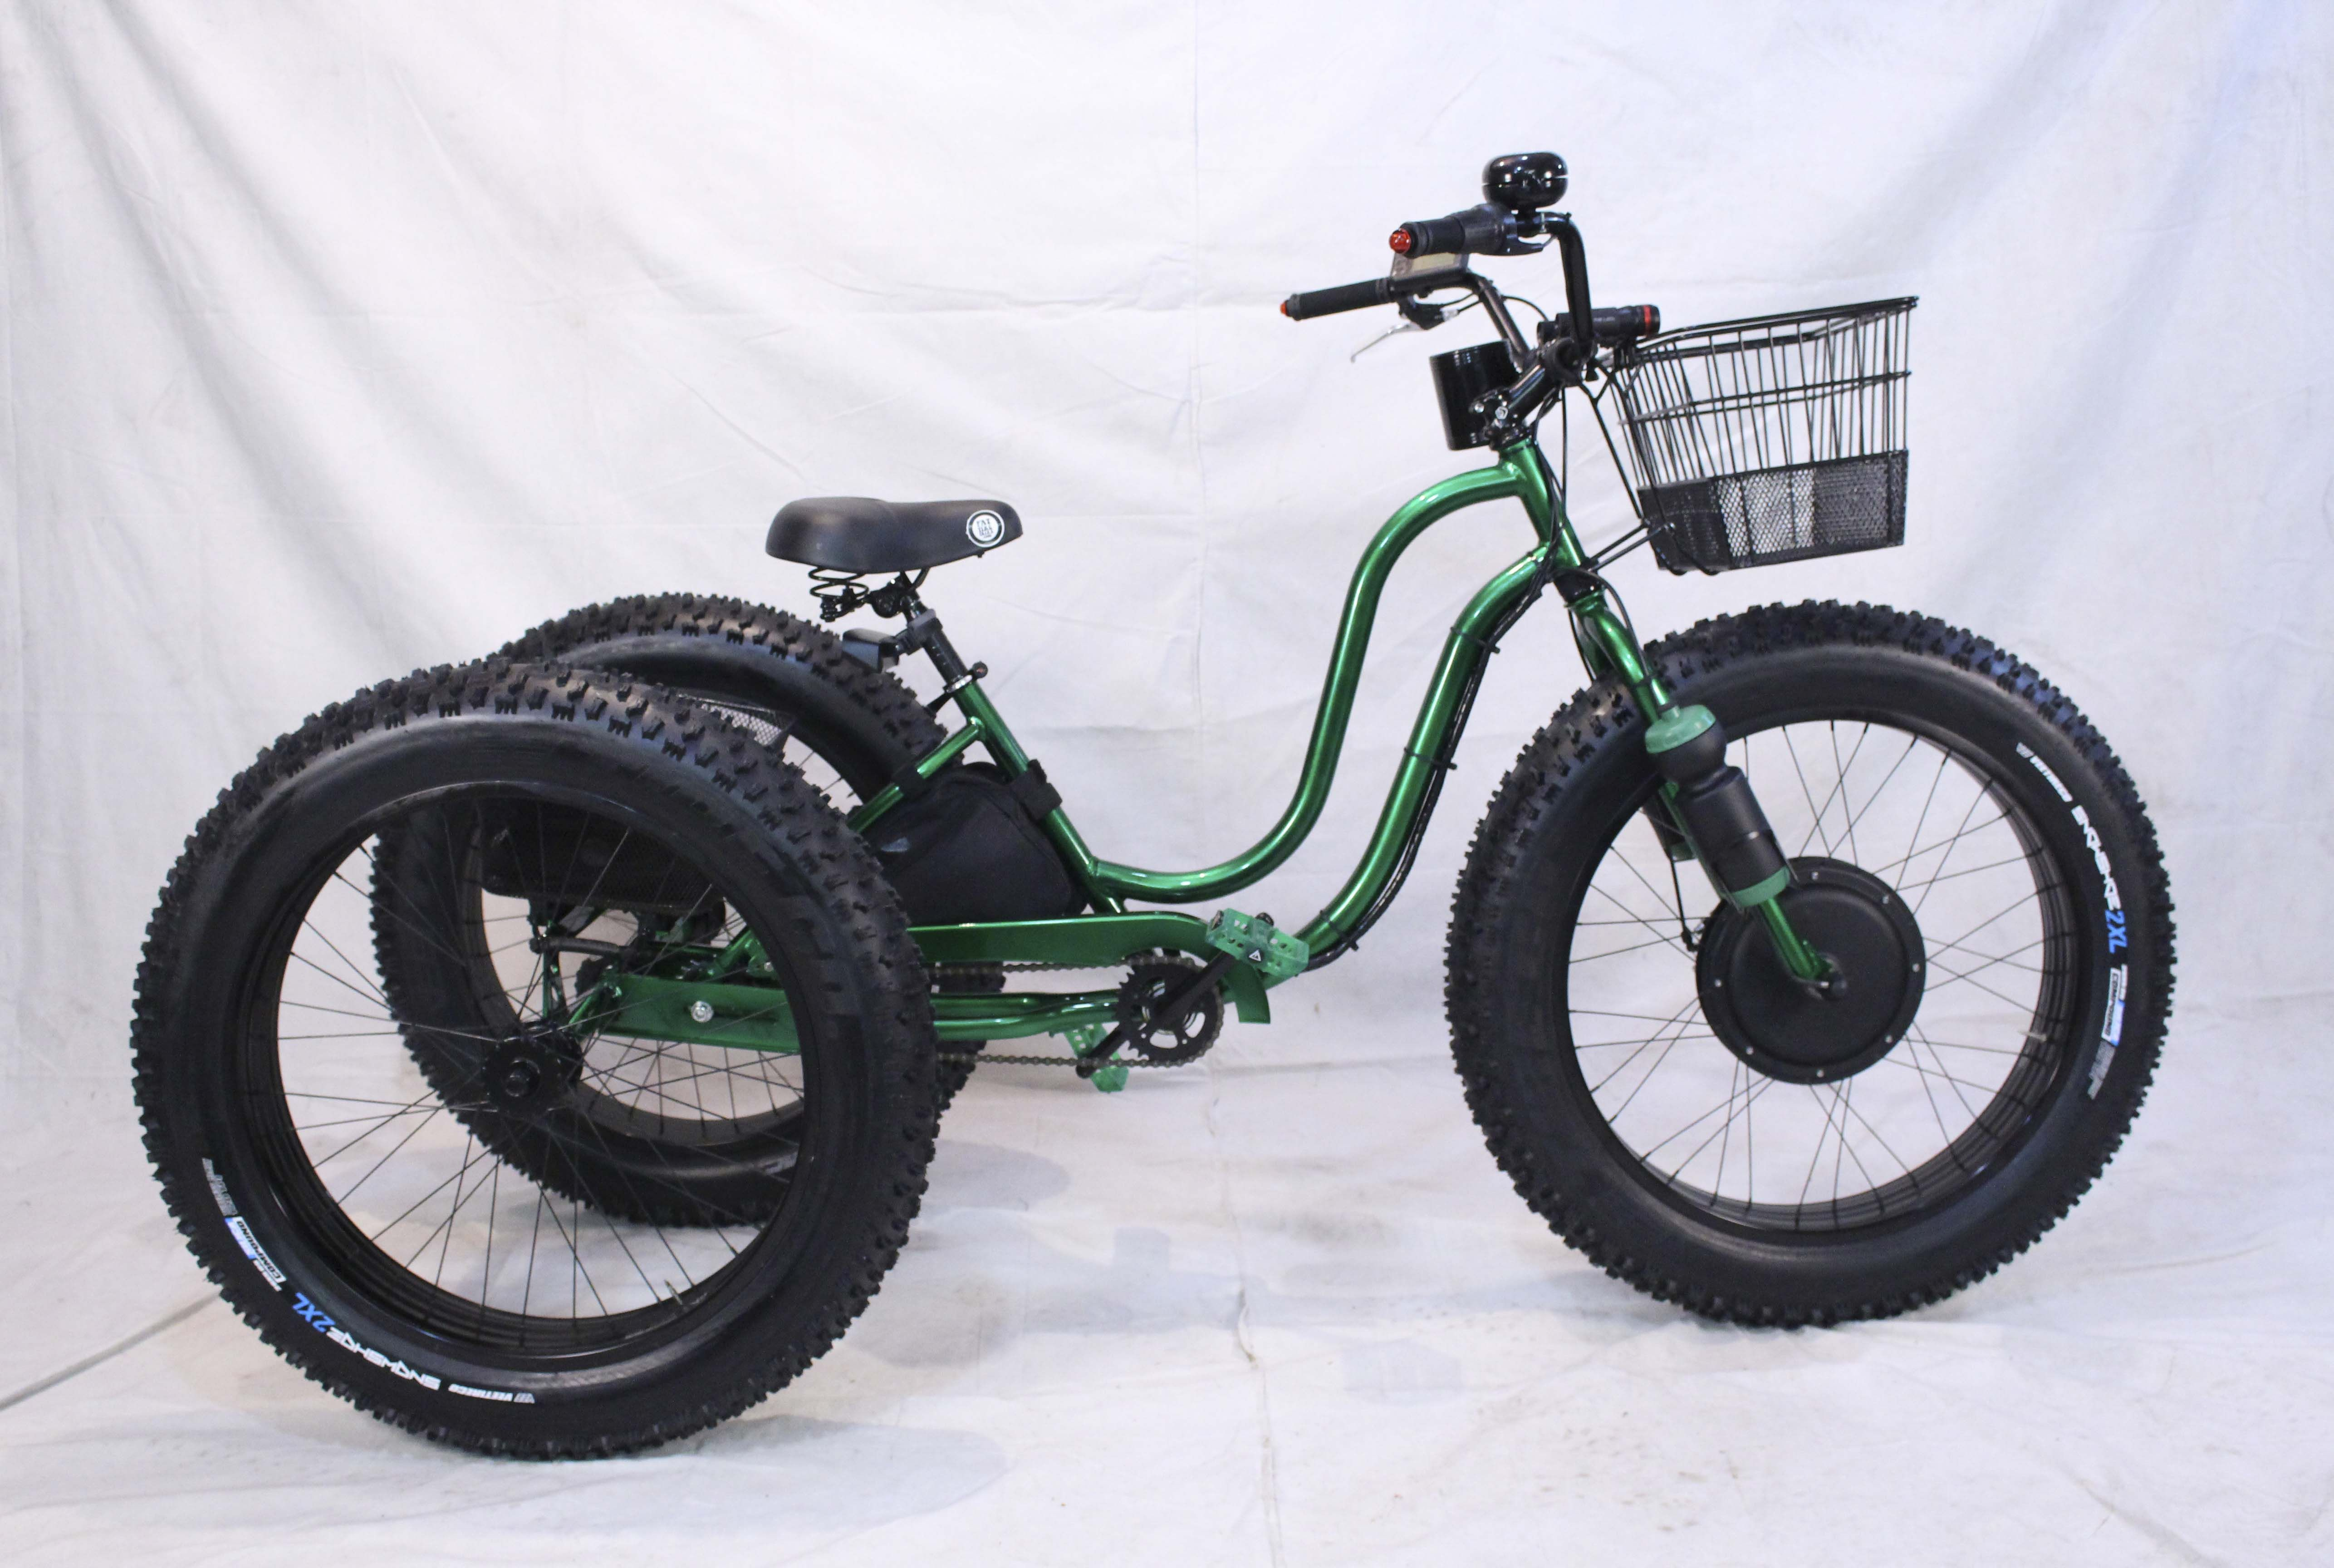 Really. motors for three wheel adult trike excellent idea